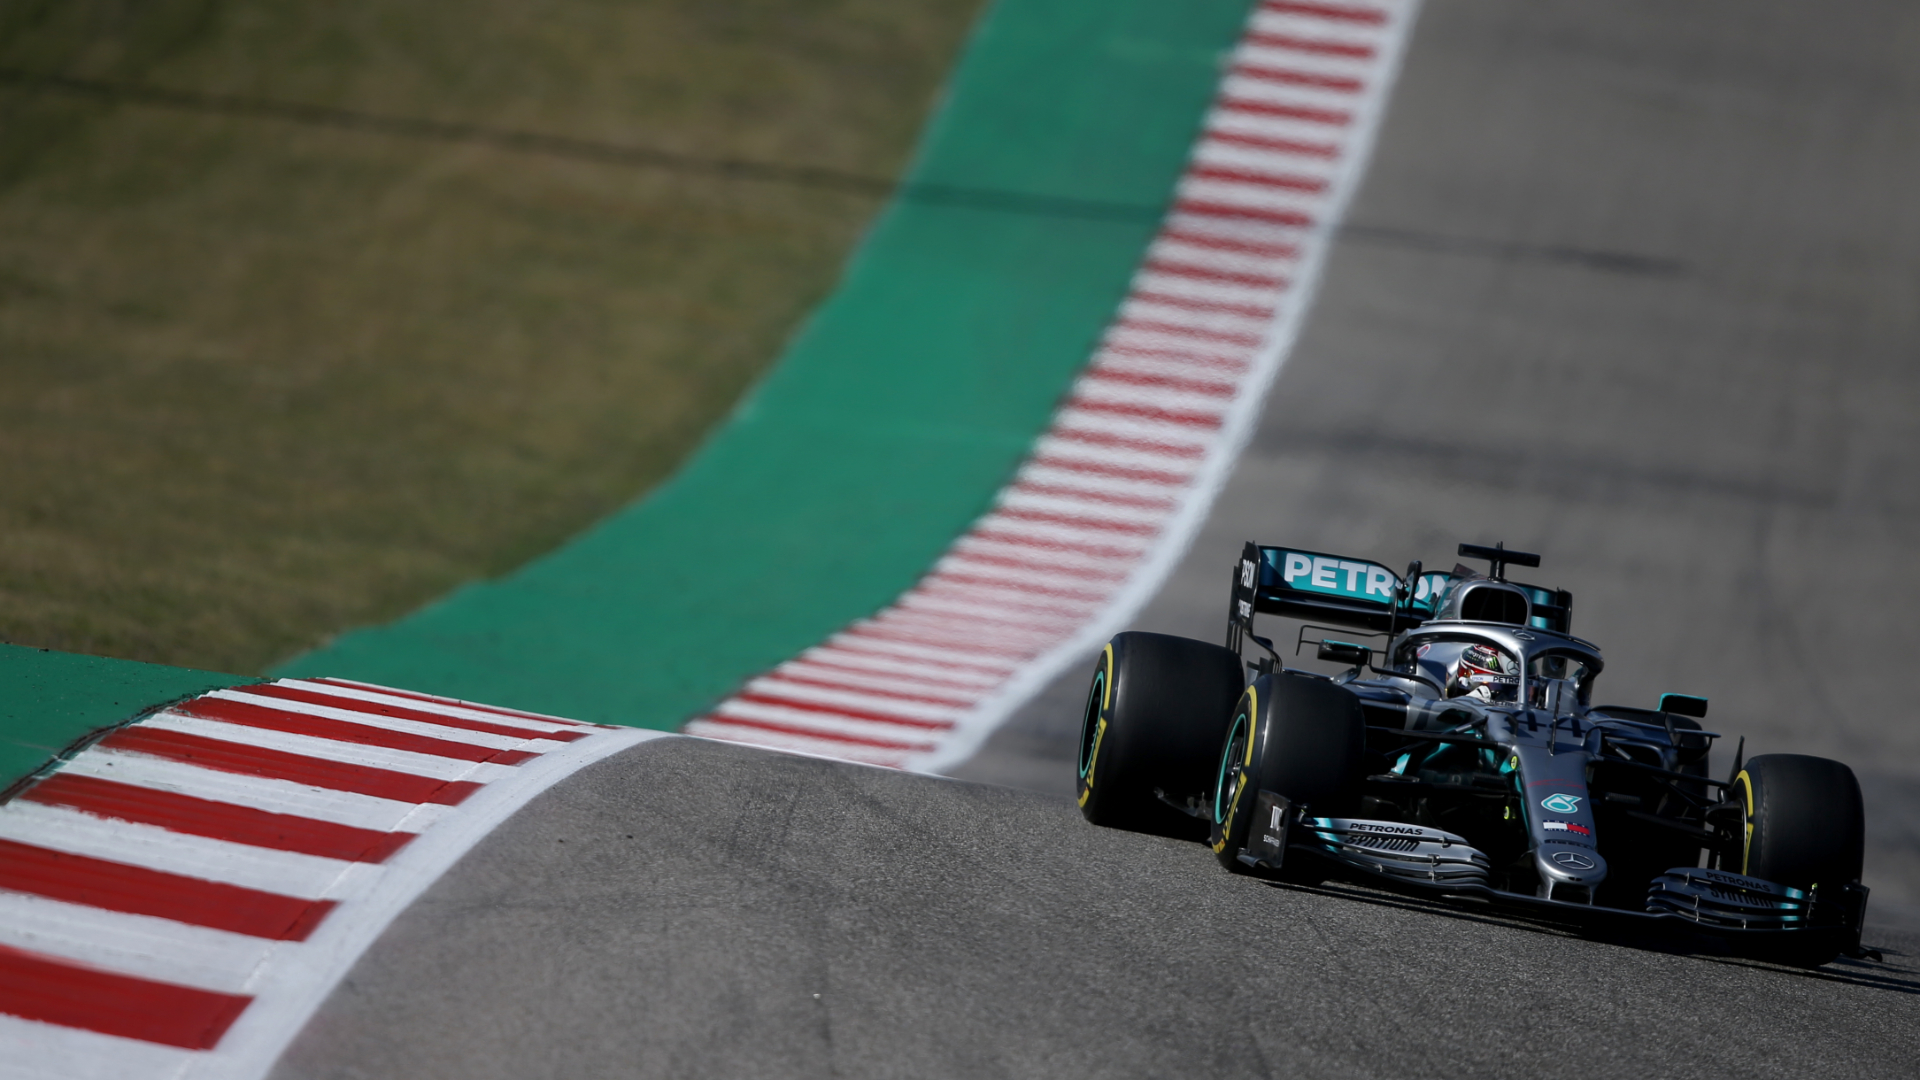 F1 Austin Grand Prix could be wiped out by COVID-19 surge in U.S. 1